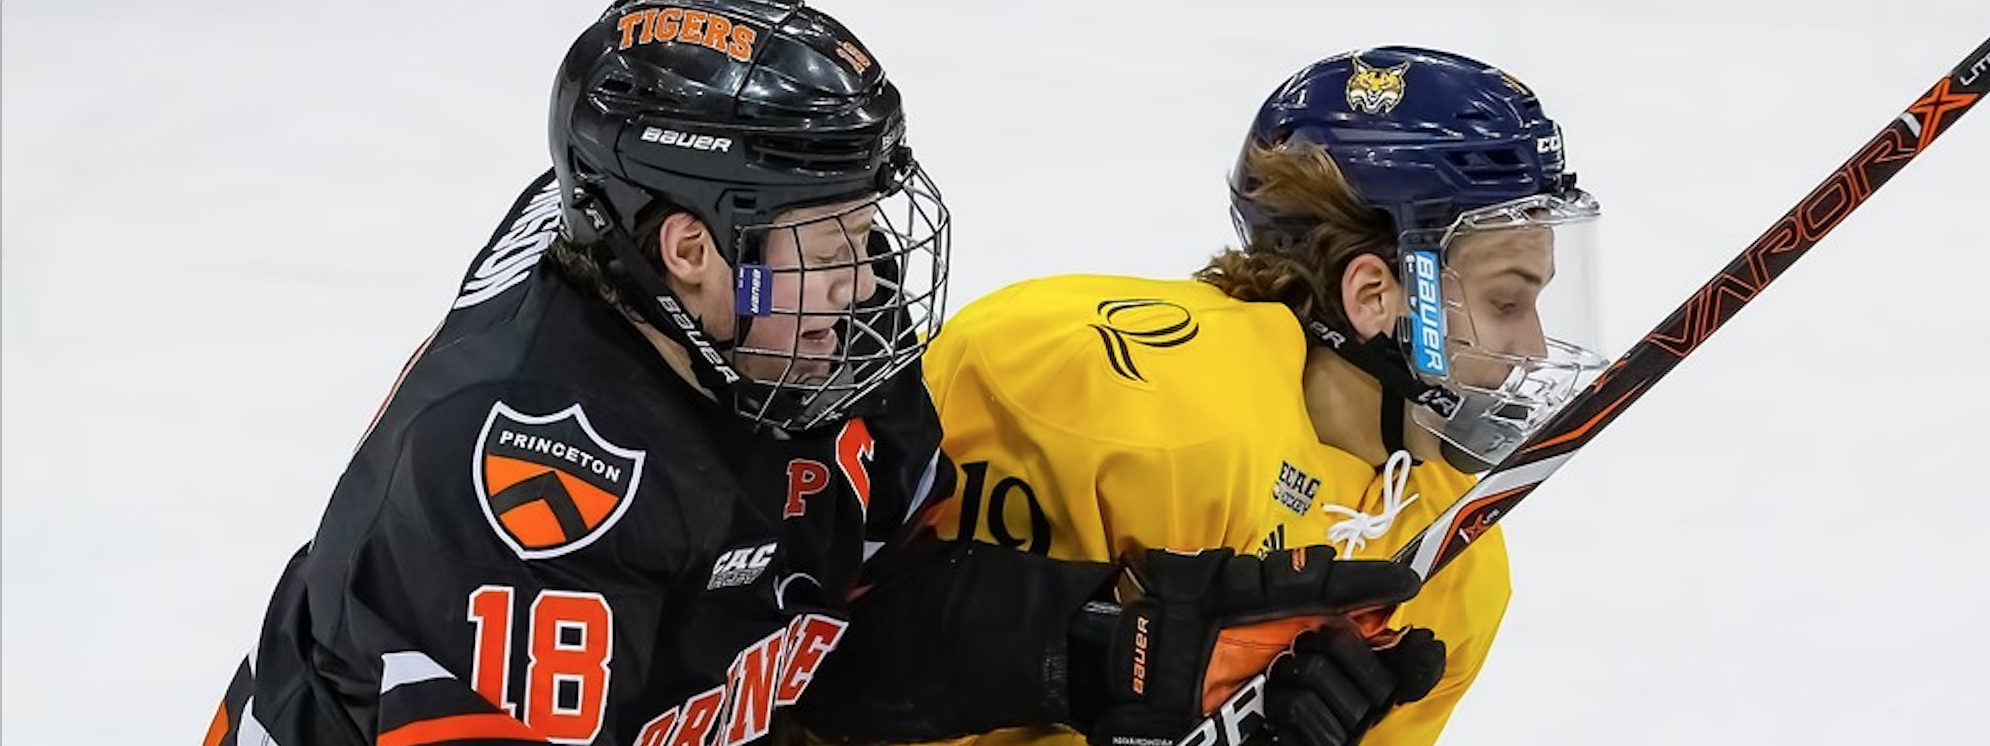 f4933fac9a0 Why College Hockey Requires Players To Wear Full Cages